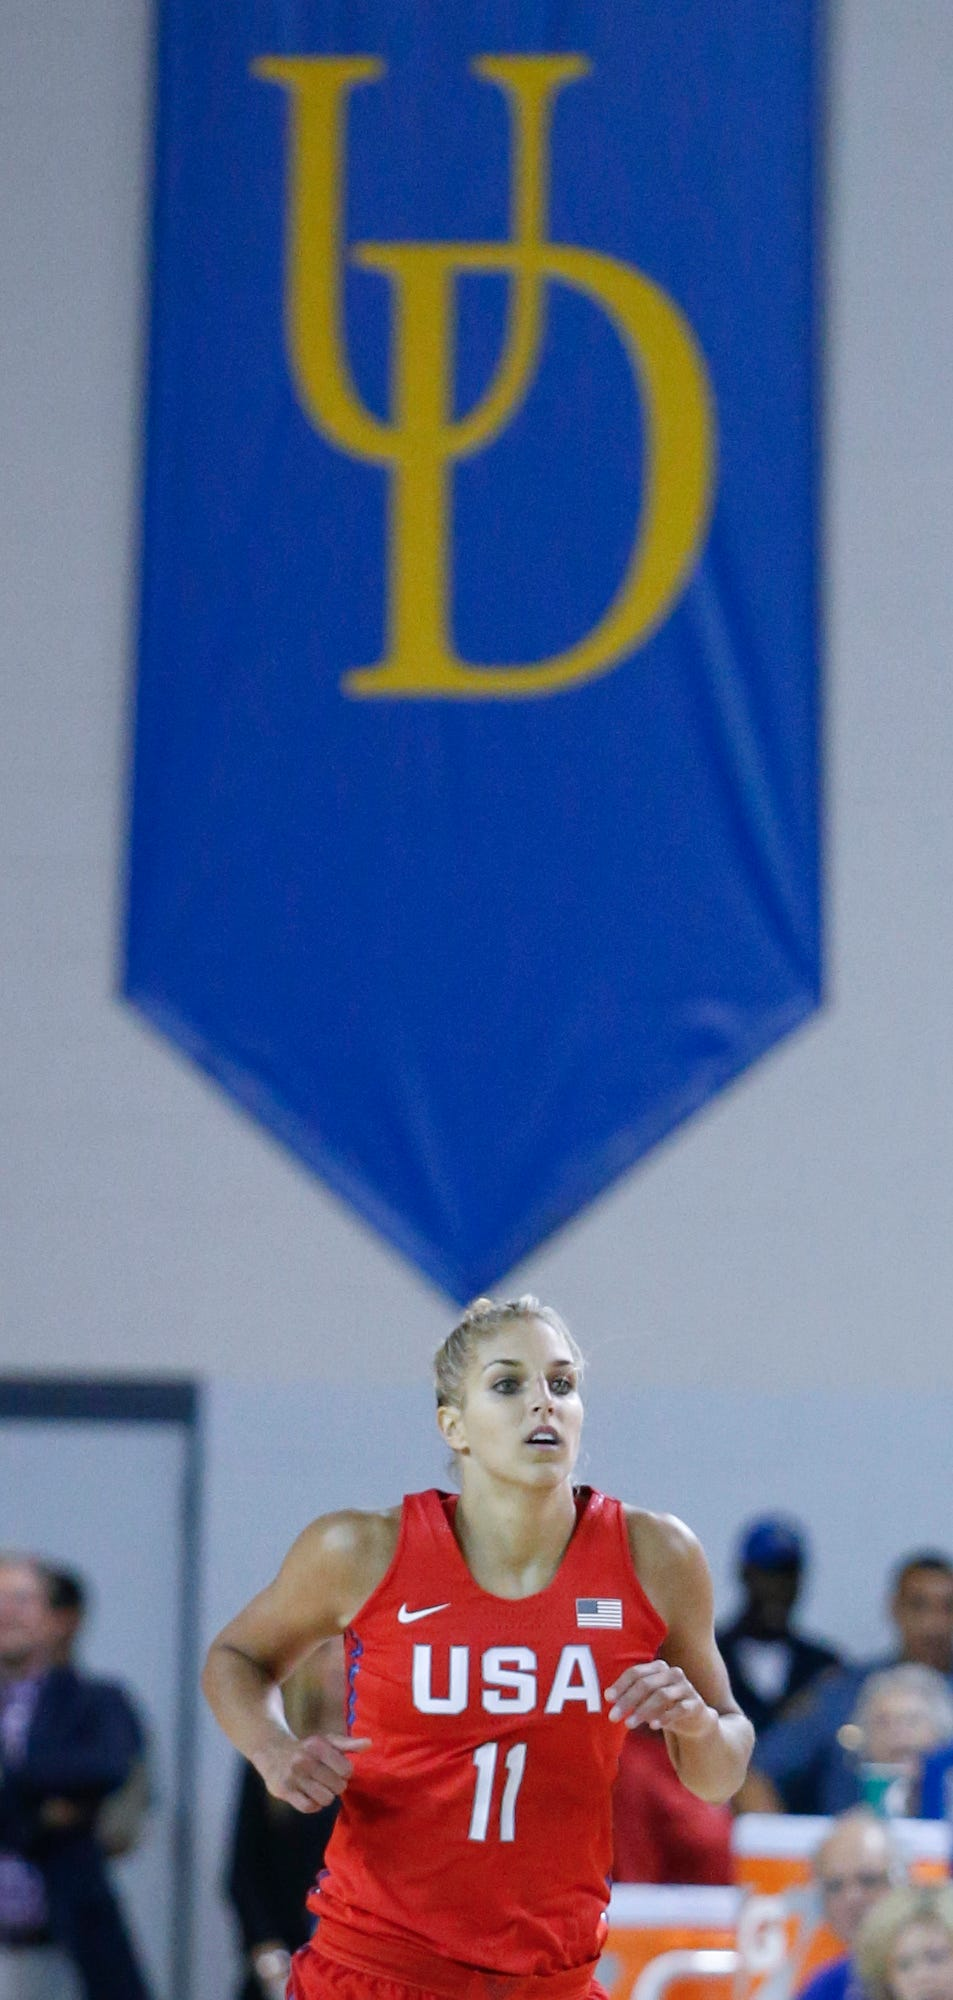 USA's Elena Delle Donne wears the national team jersey on the floor where she played her college career in the second half of an exhibition game between the France and USA women's basketball teams at the Bob Carpenter Center Wednesday.